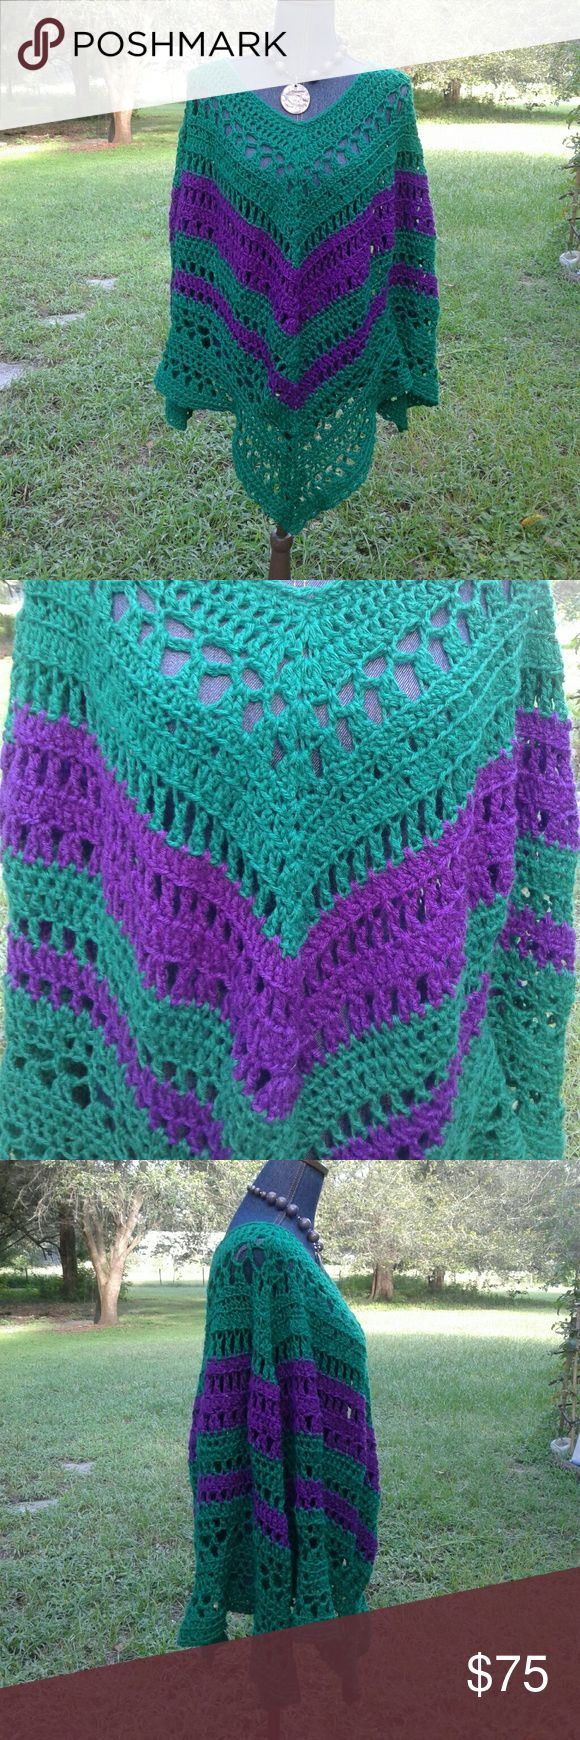 """Hand Crochet Poncho Boho Festival Hippie Just finished! Beautiful vibrant green & purple hand crochet poncho.  Perfect for those summer festivities, festivals, cook outs,  family gatherings. Measures 26"""" from neck to front point,  34"""" across front bust. Super stretchy, will fit M to XL. 100% acrylic is machine washable. One of a kind! Will add fringe if requested for additional fee. Price firm unless bundled. Lobax Sweaters Shrugs & Ponchos"""